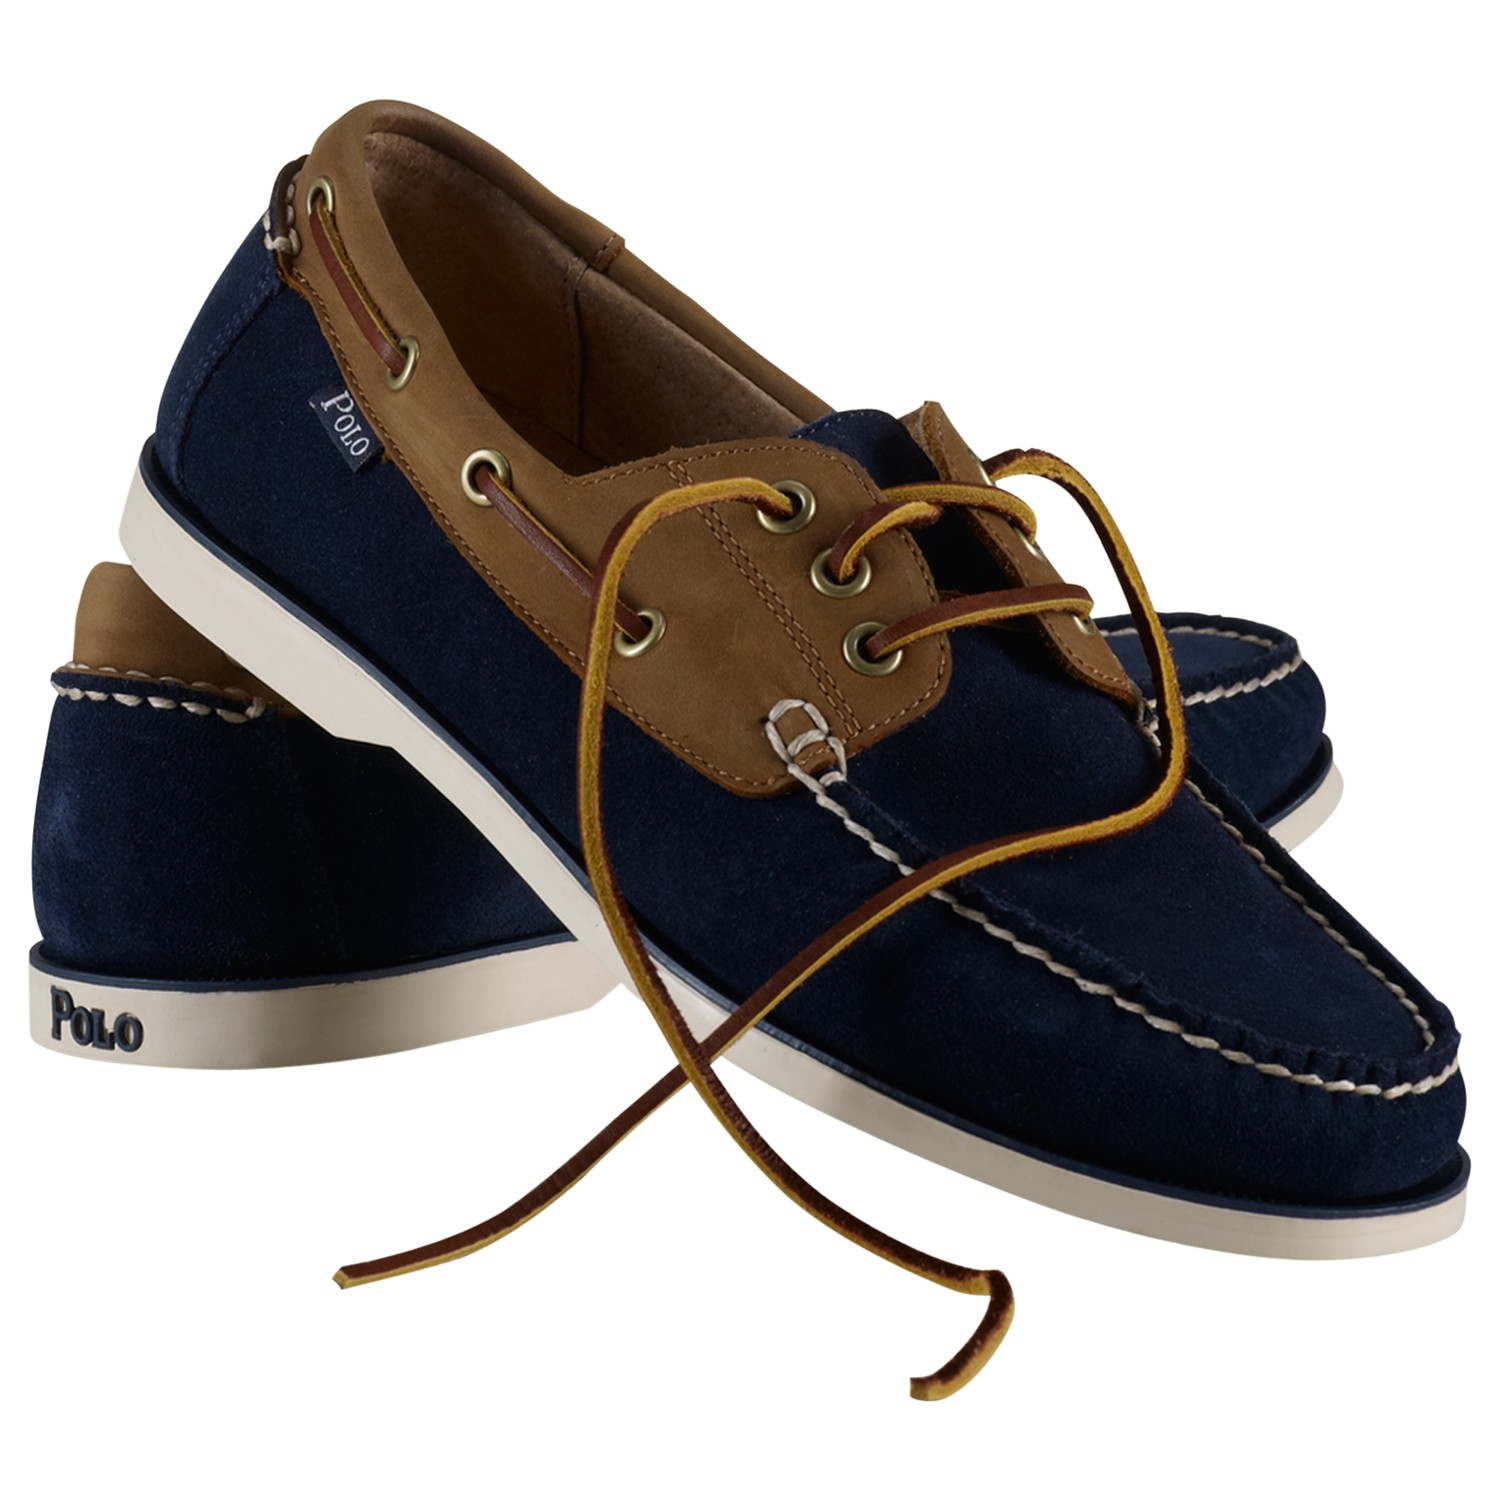 polo ralph bienne suede and leather boat shoes in